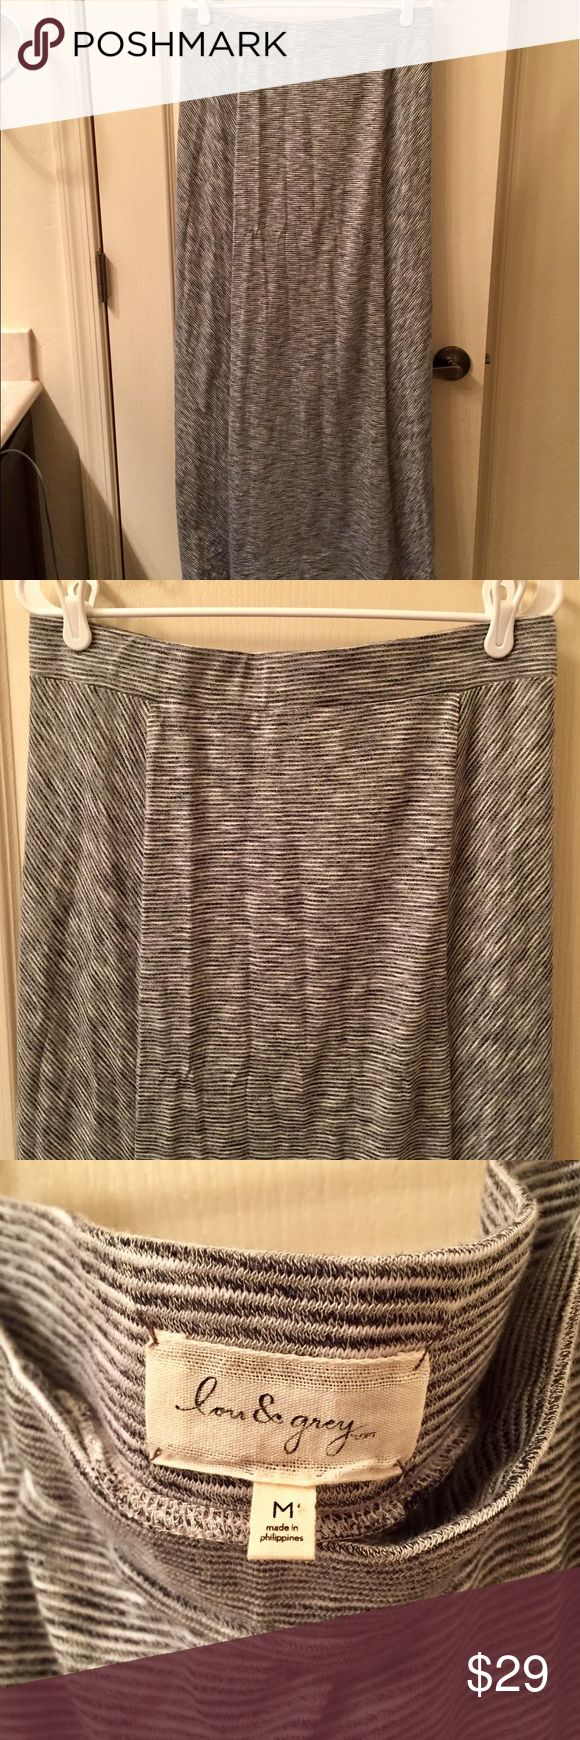 Lou & Grey Maxi Skirt Blue/White Sz Medium Lou & Grey maxi skirt in blue/white striped sz medium. Comfy material, can be dressed up or down. Perfect for Spring/Summer. Like new, worn once, excellent condition. Retails for $69. Lou & Grey Skirts Maxi